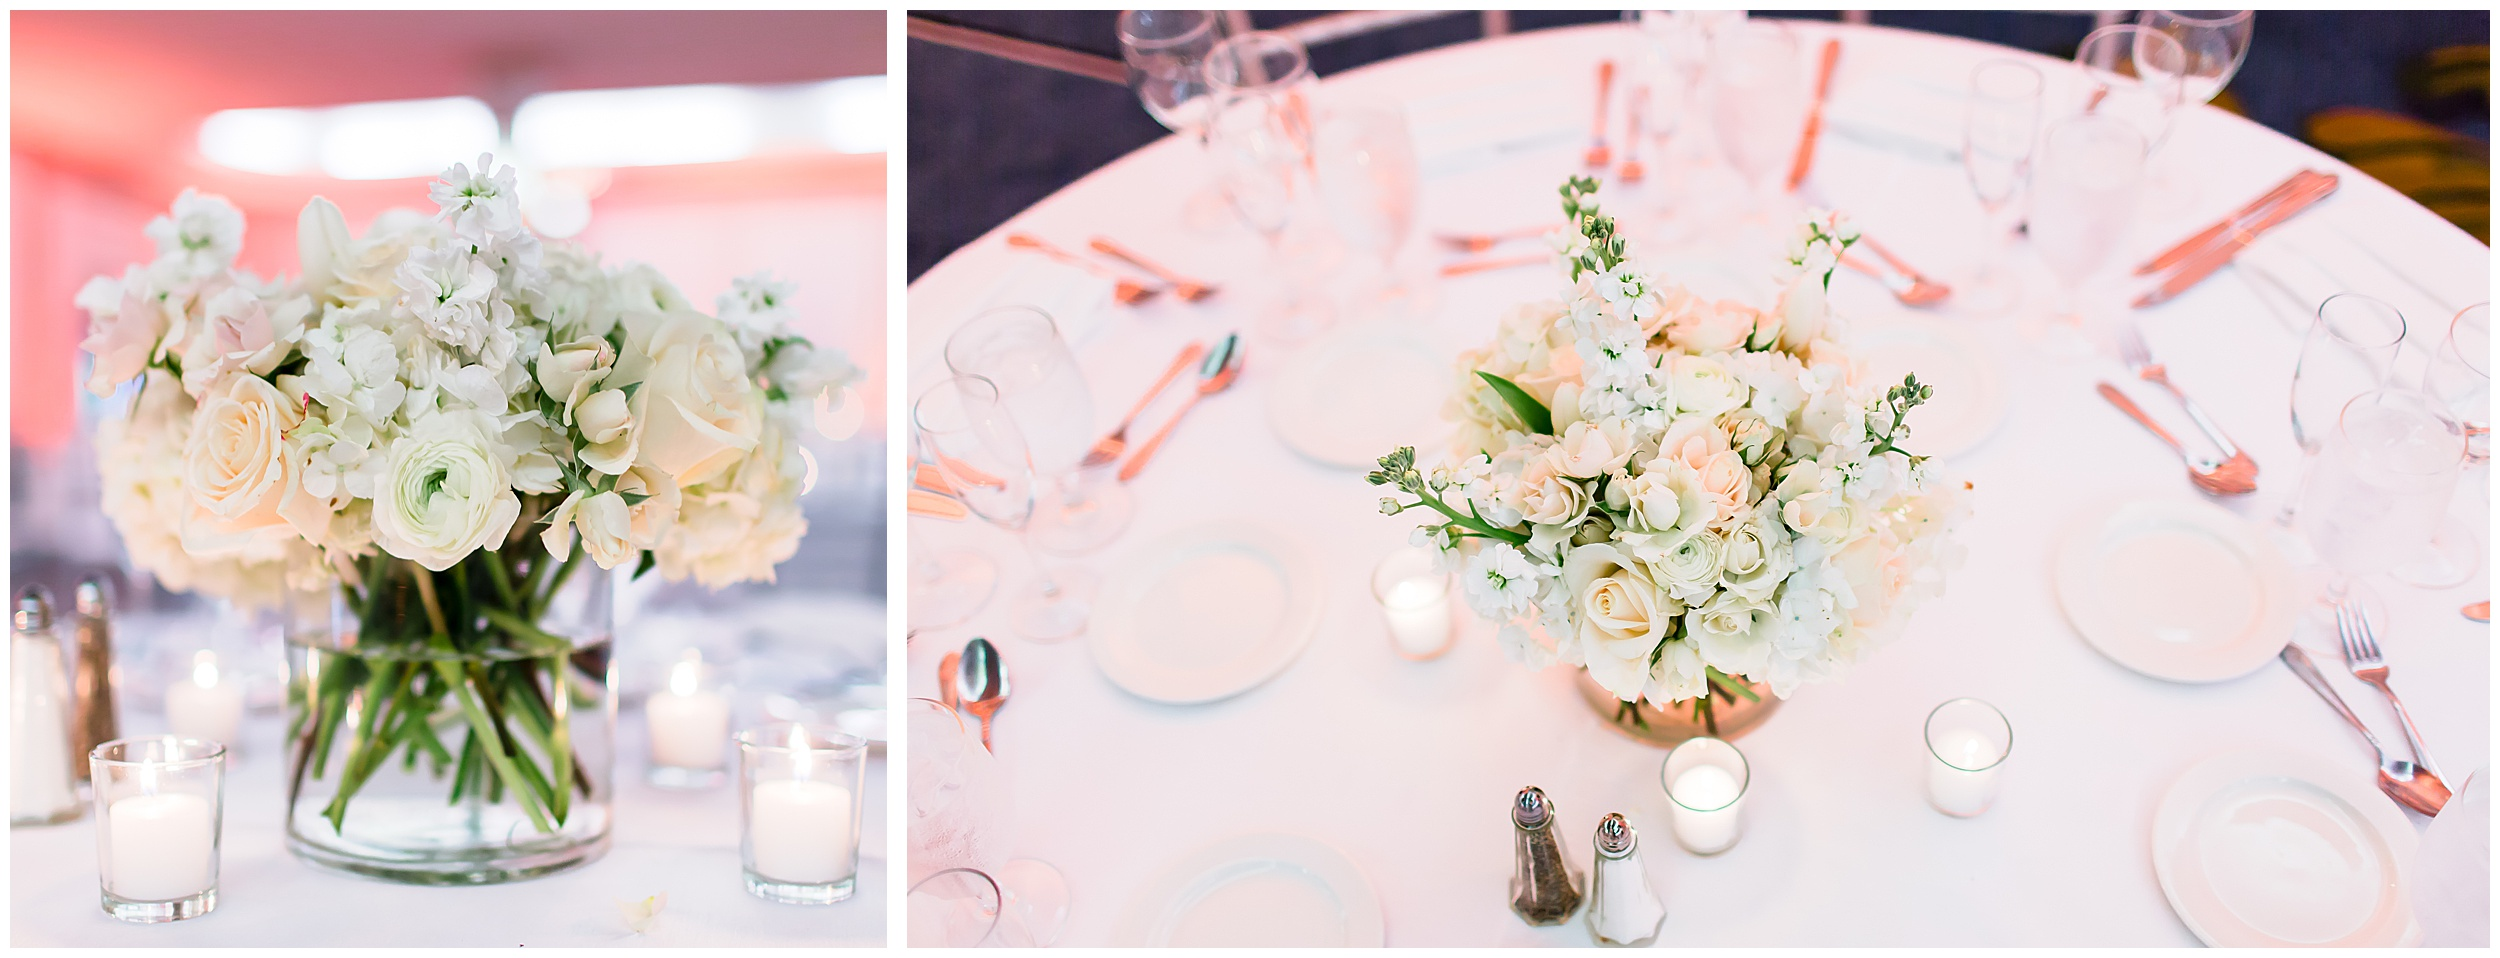 table-decor-settings-candles